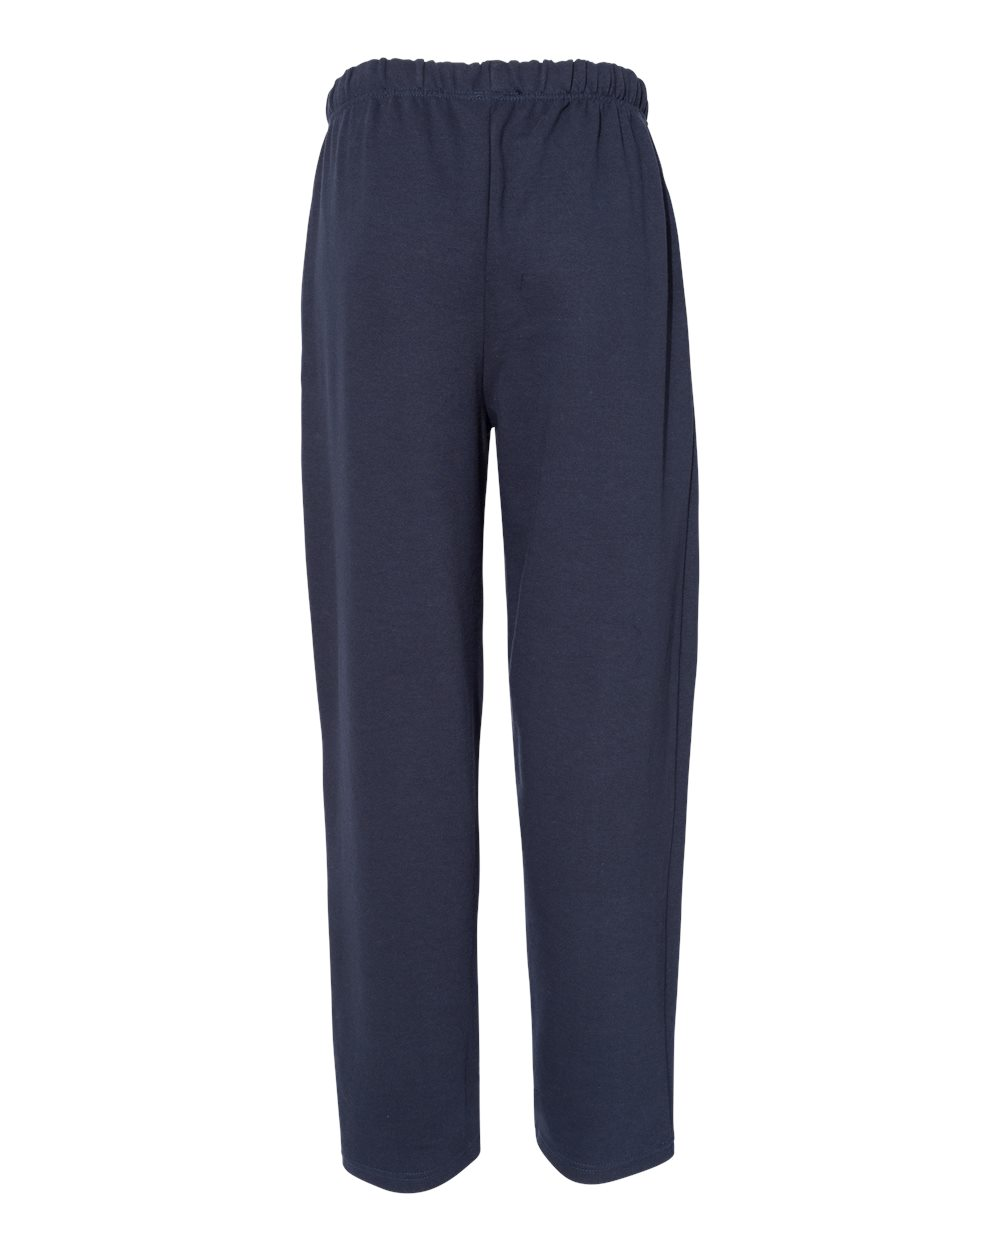 C2-Sport-Mens-Open-Bottom-Sweatpants-With-Pockets-5577-up-to-4XL thumbnail 13